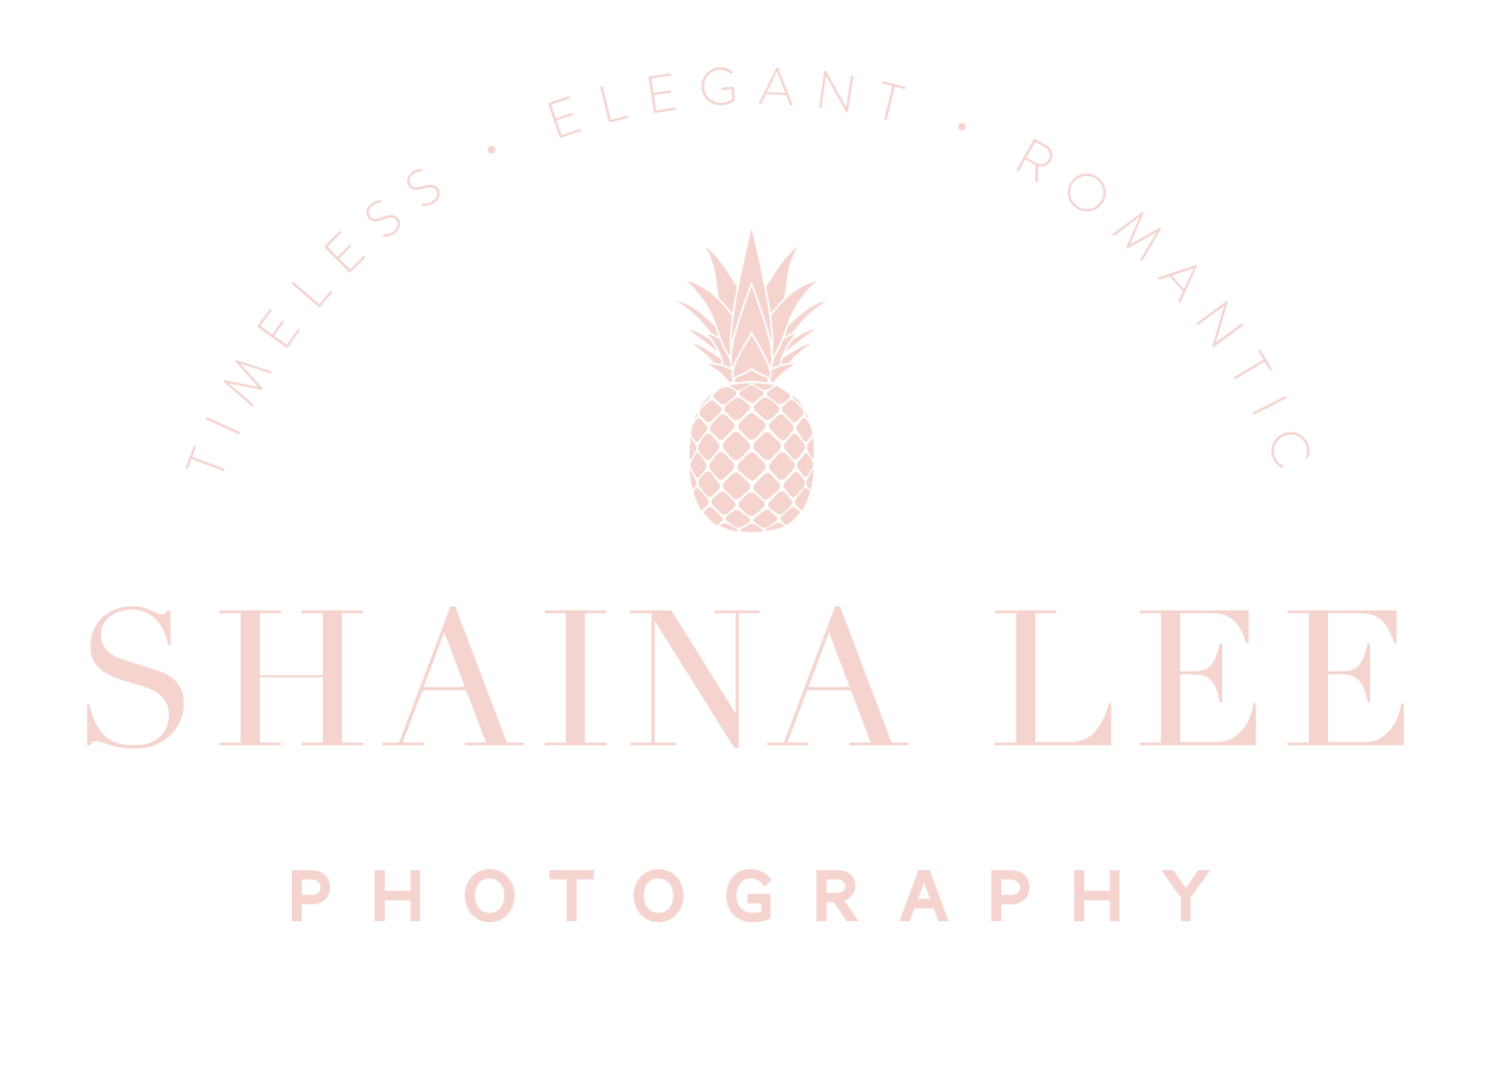 Connecticut, Rye NY, & Hawaii Wedding, Engagement & Boudoir Photographer | Shaina Lee Photography